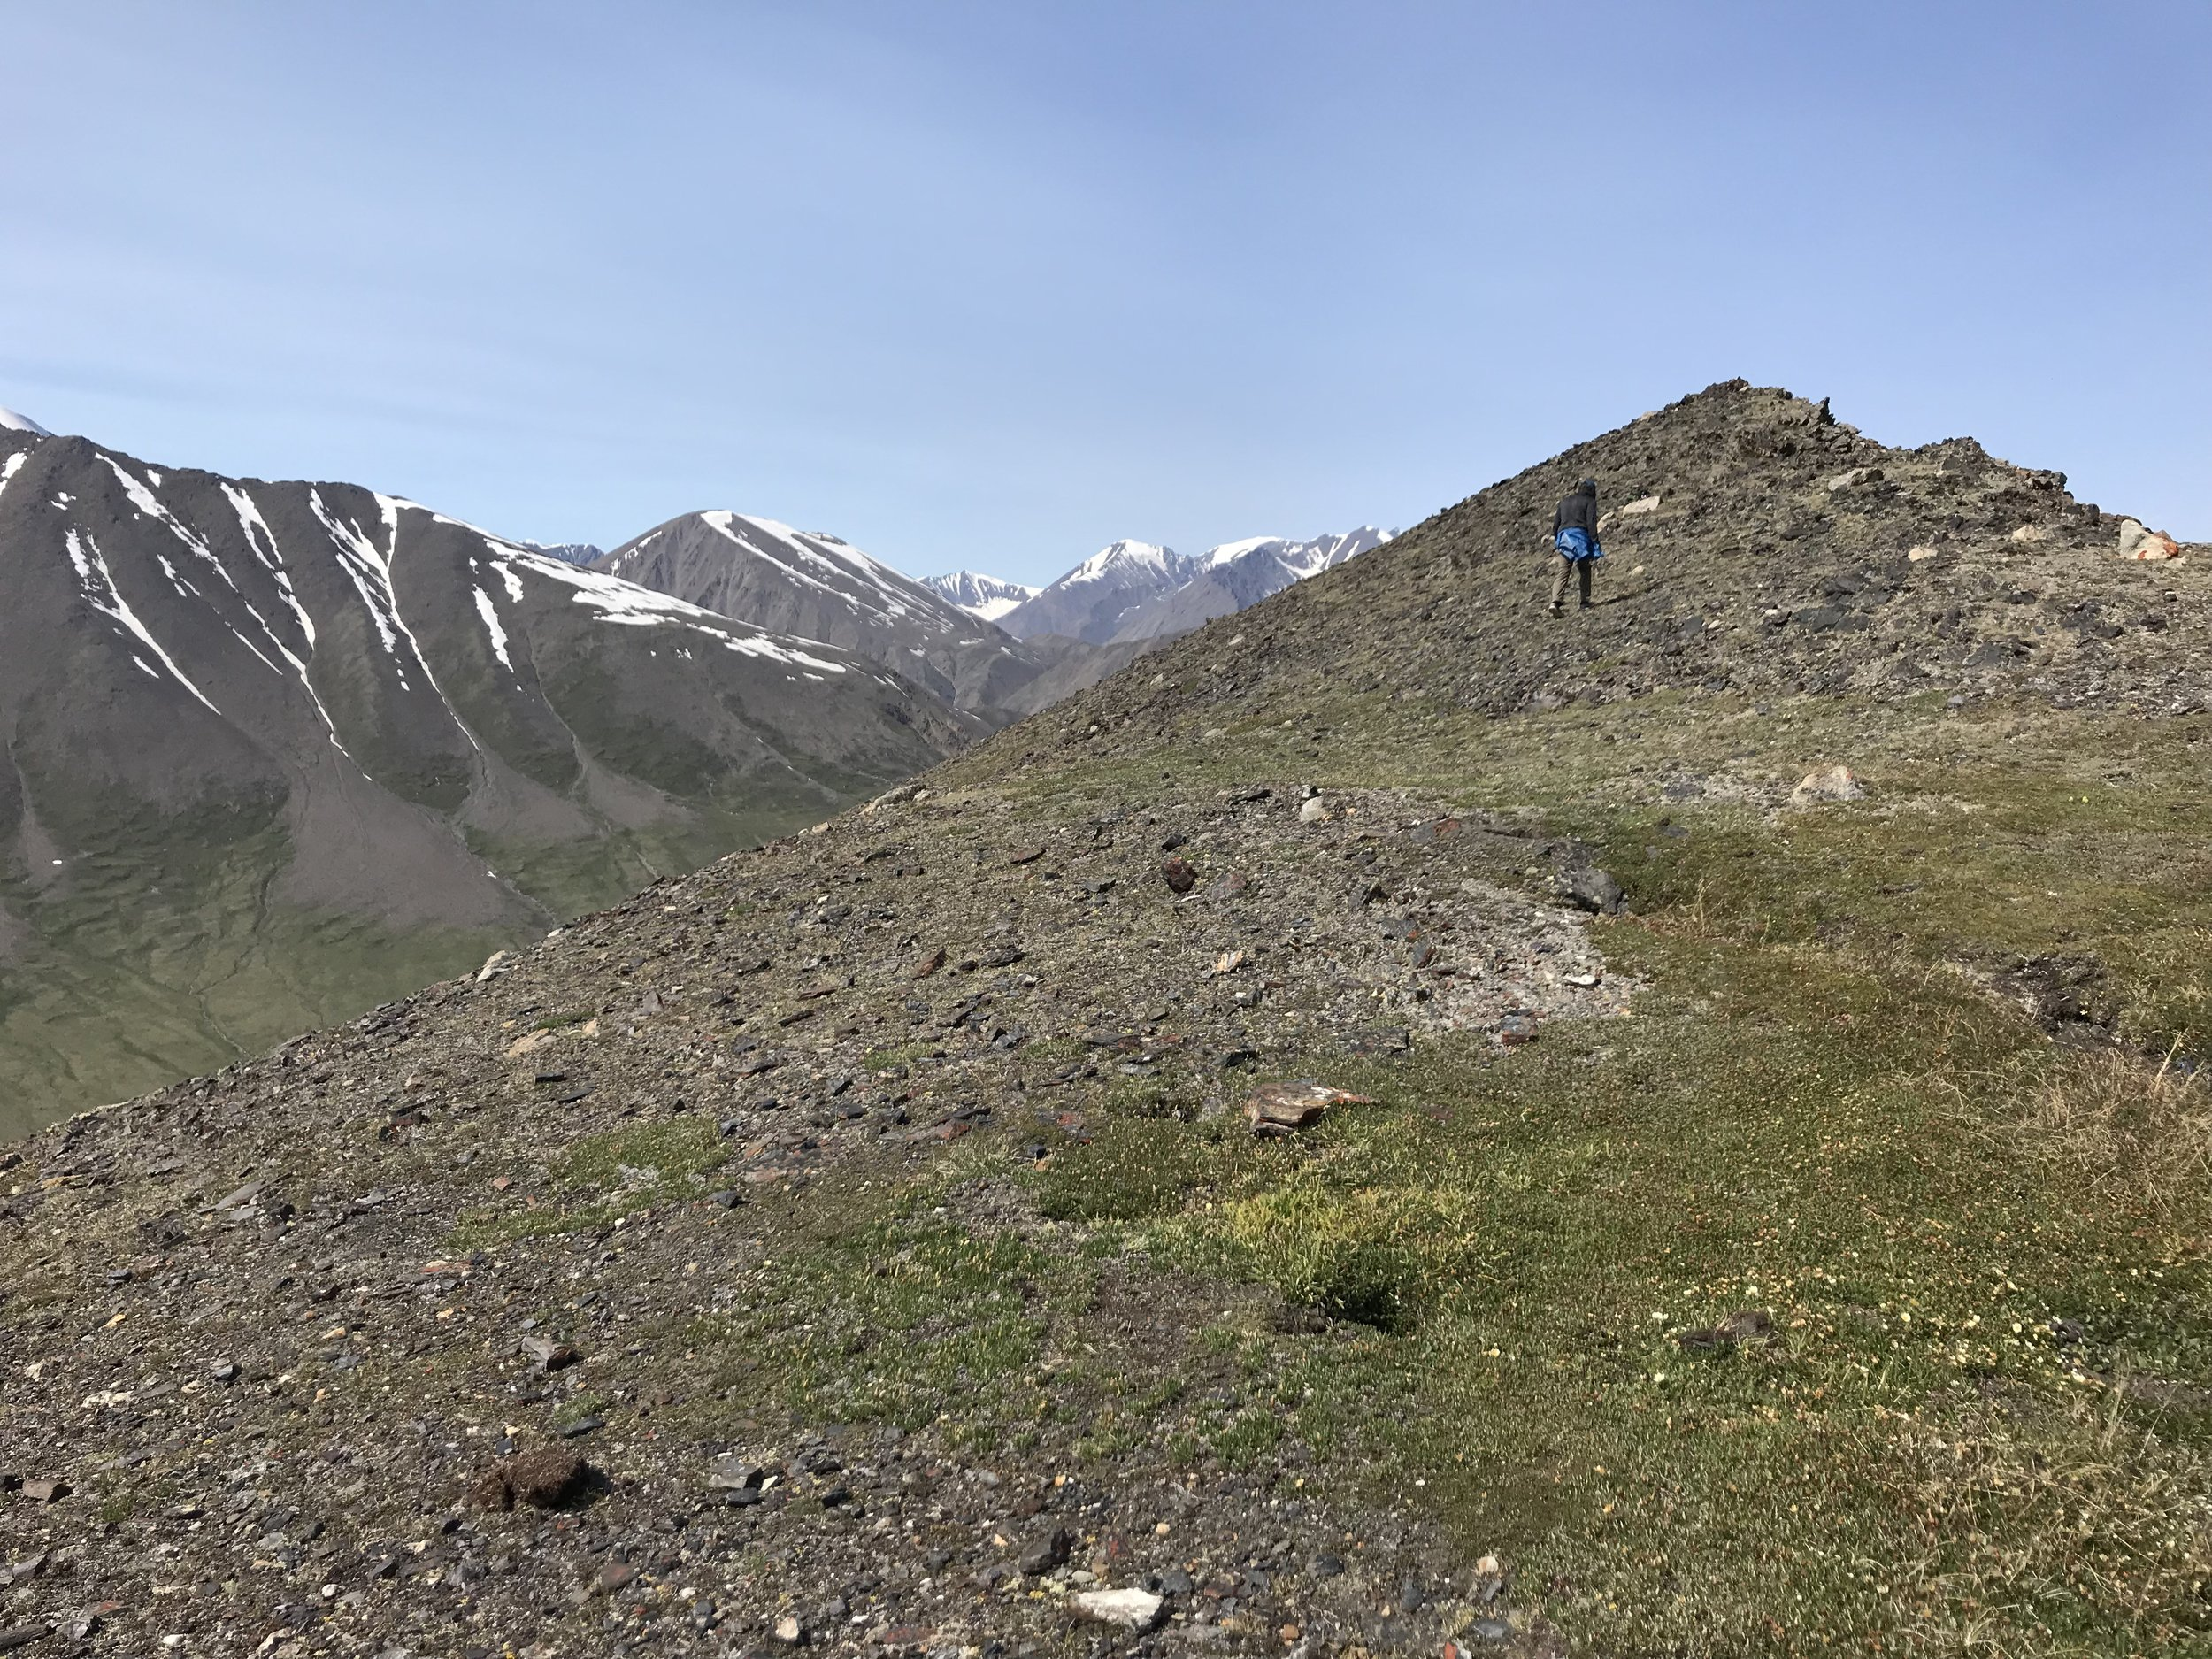 Walking once above the saddle is a lot less steep, but there is no game trail to follow.